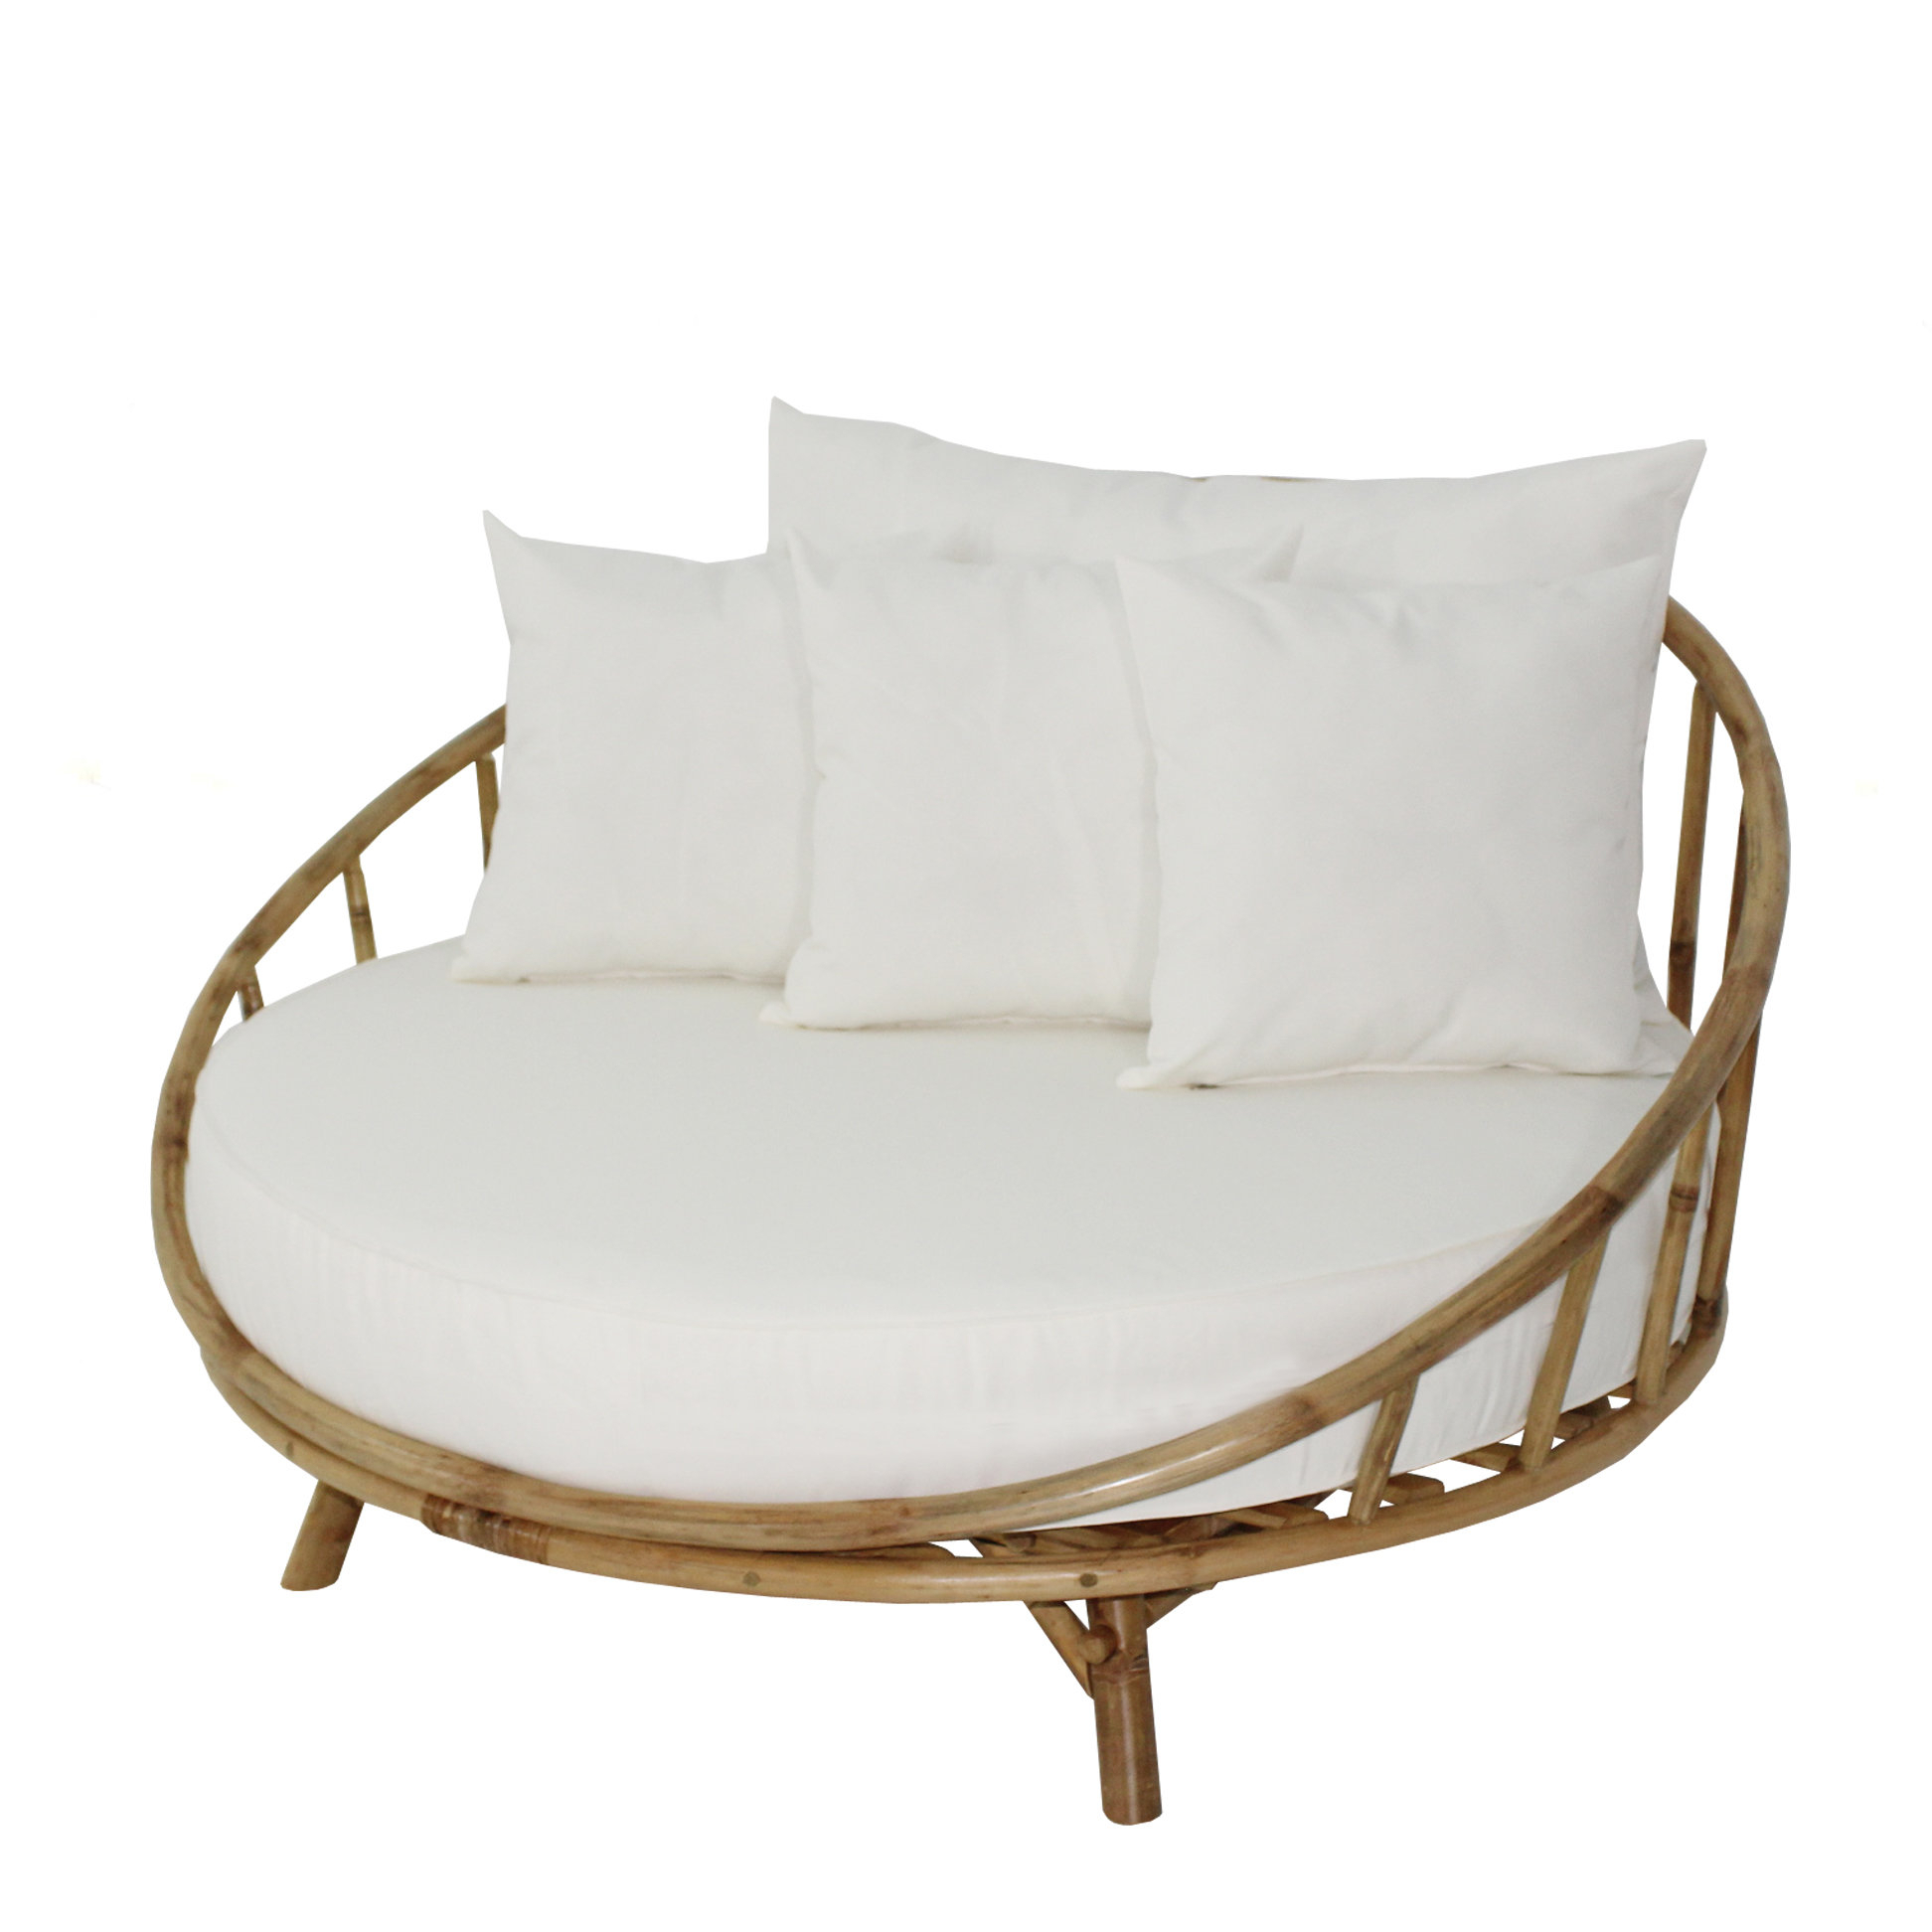 Trendy Leiston Round Patio Daybeds With Cushions With Round Patio Sofa (View 16 of 20)